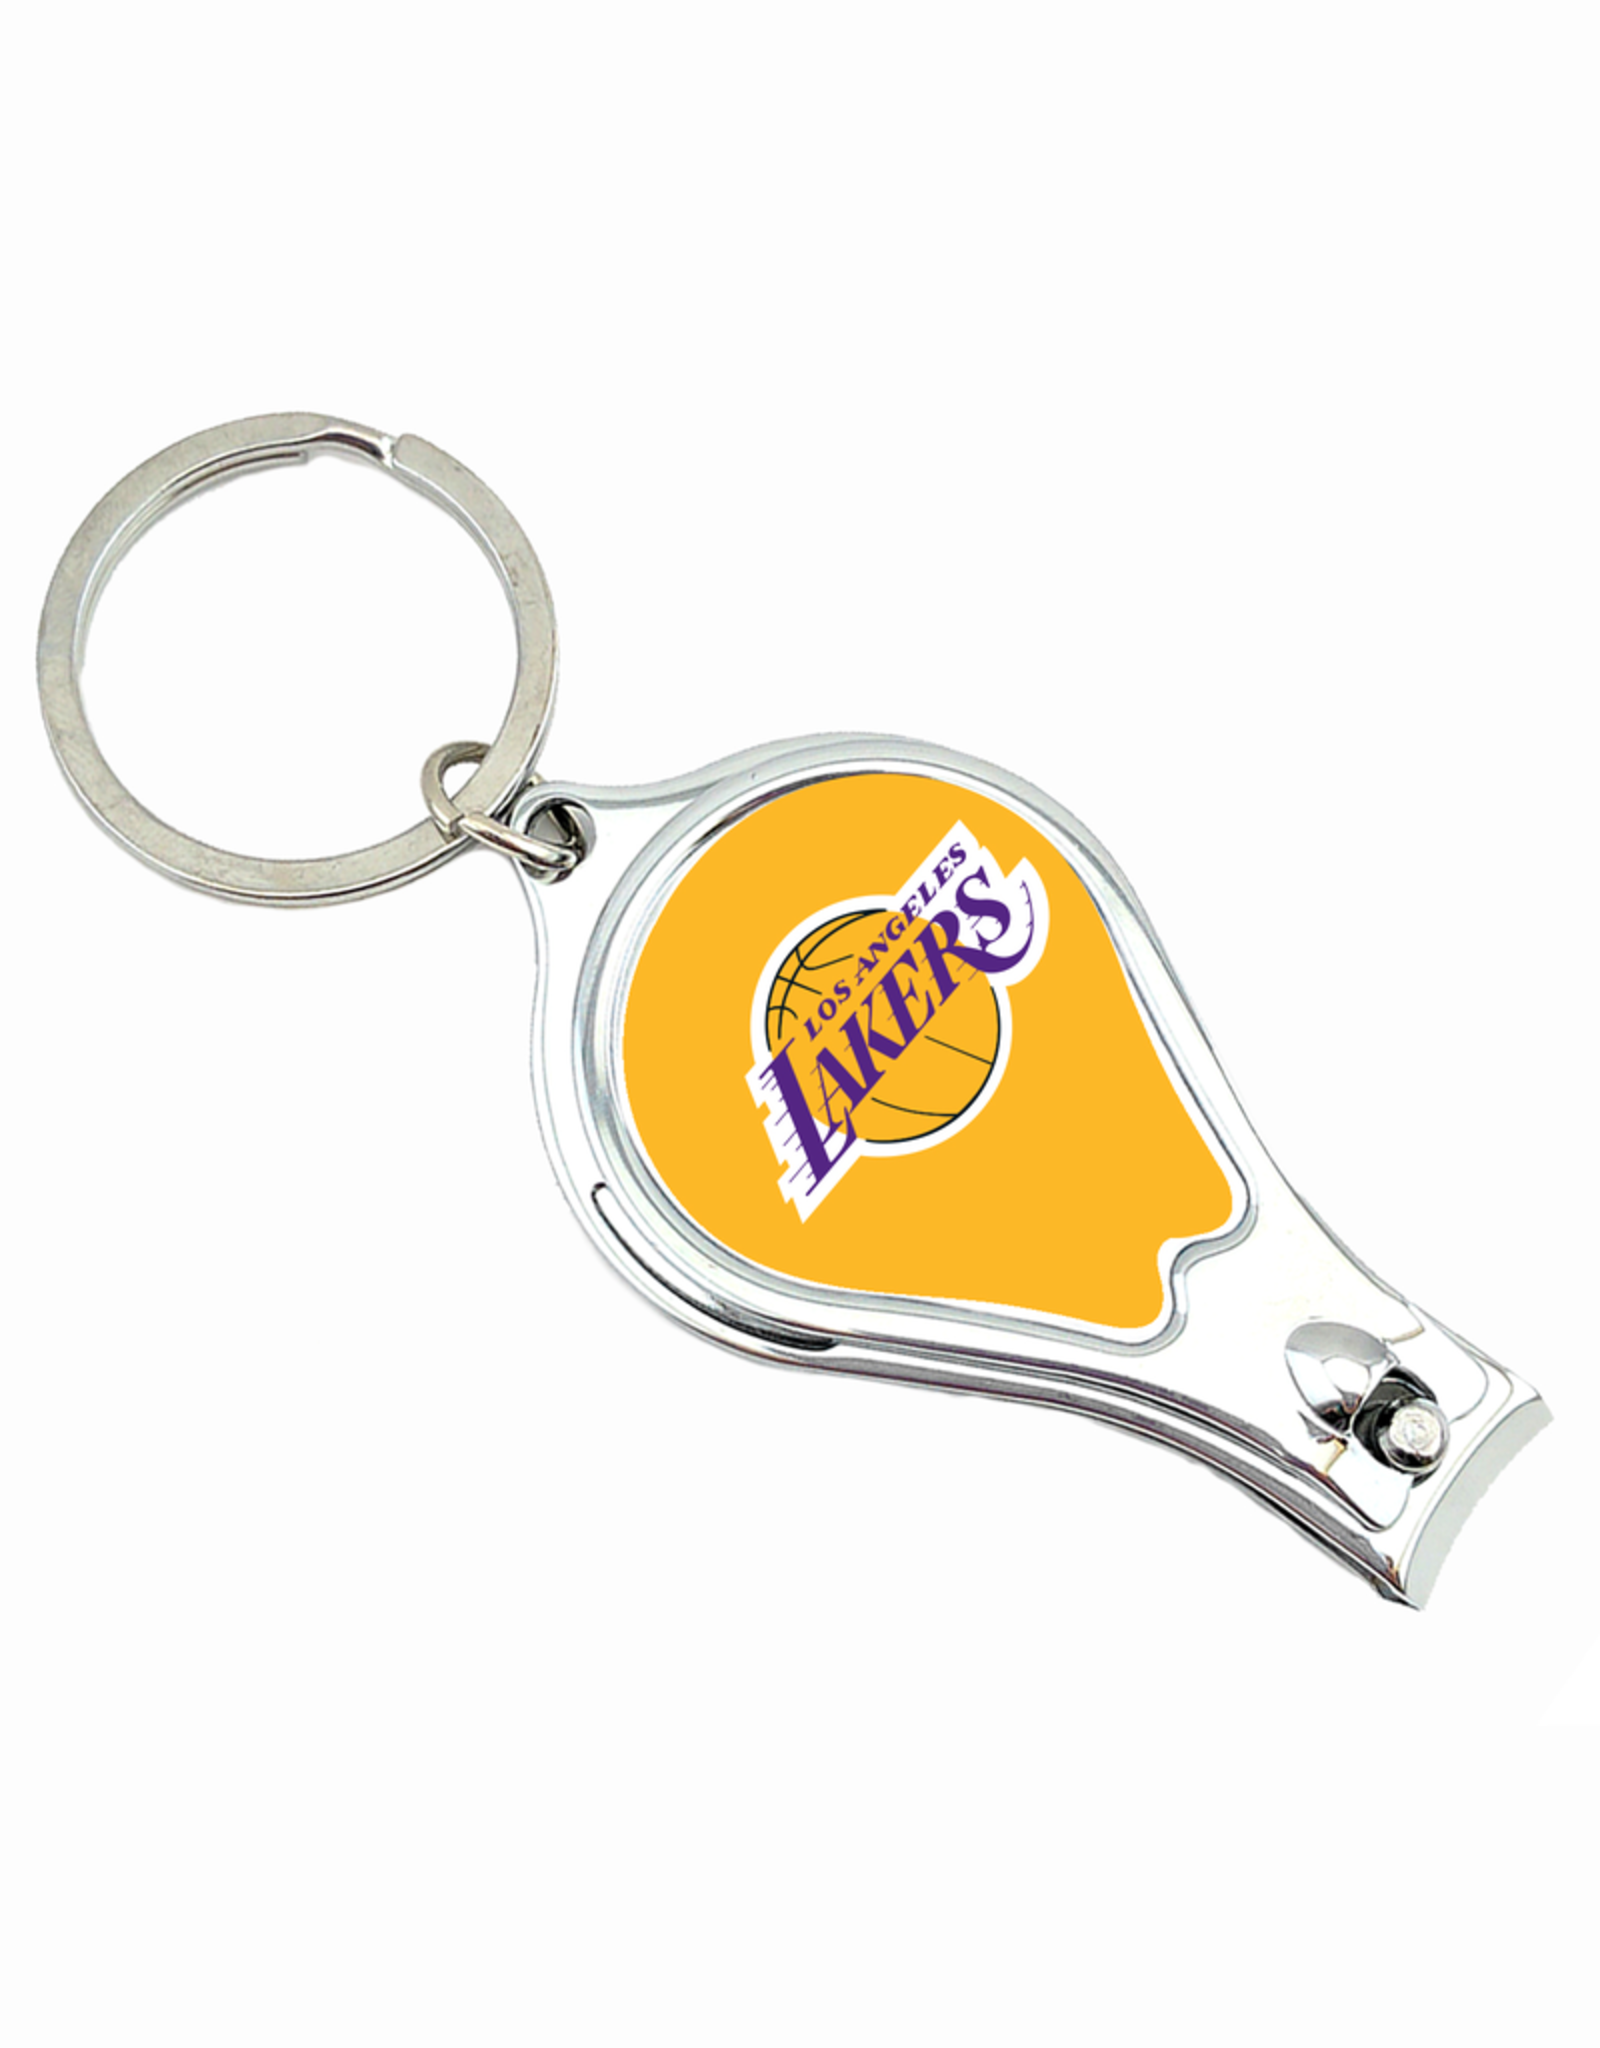 WORTHY PROMOTIONAL PRODUCTS Los Angeles Lakers Multi Function 3-in-1 Keyring